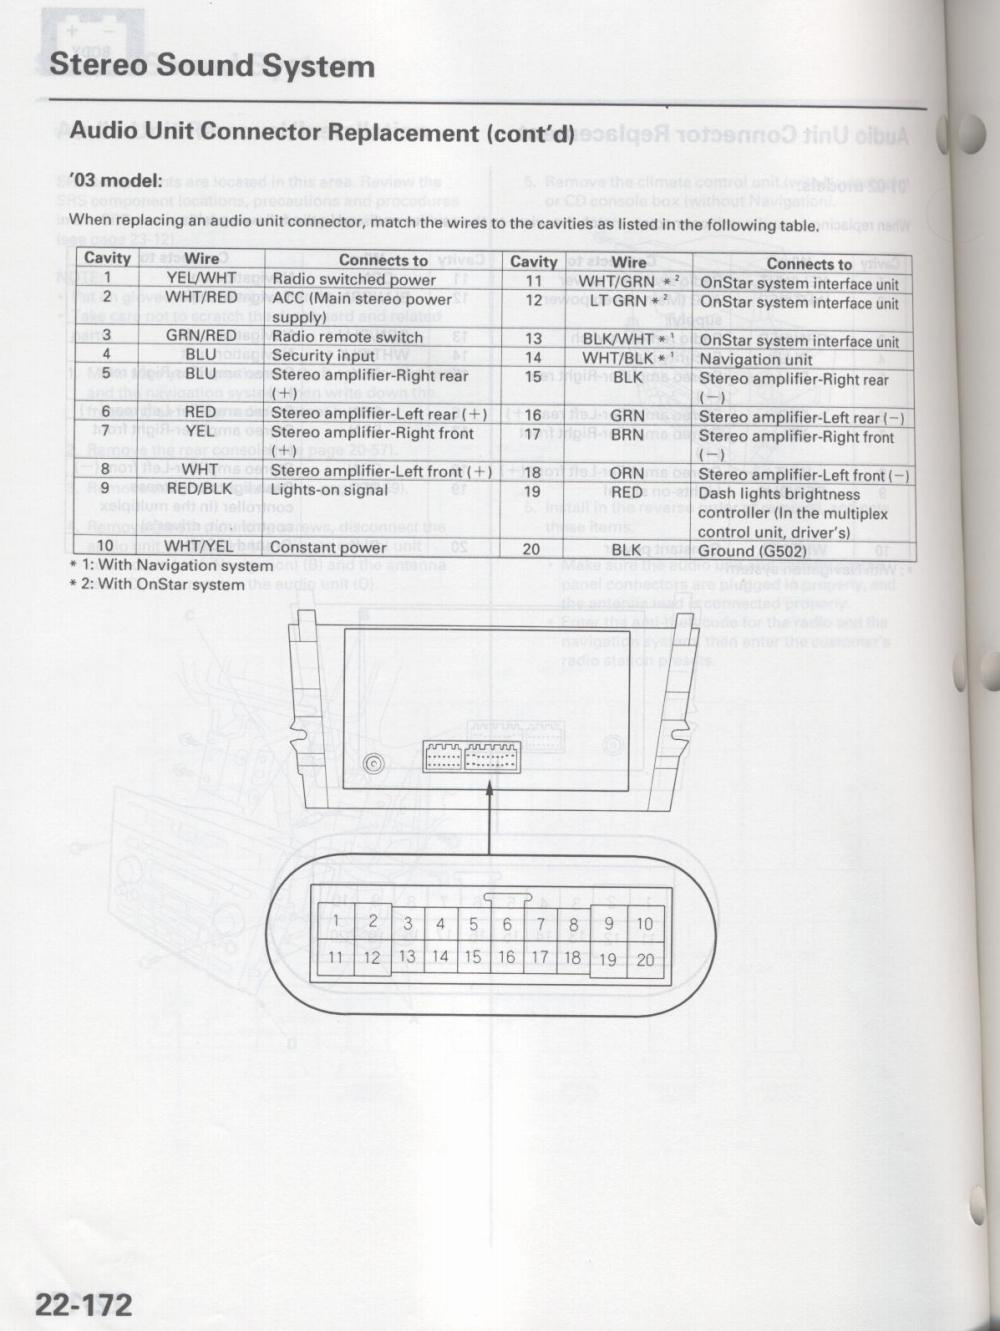 2003 Honda Civic Radio Wiring Diagram from photos.imageevent.com